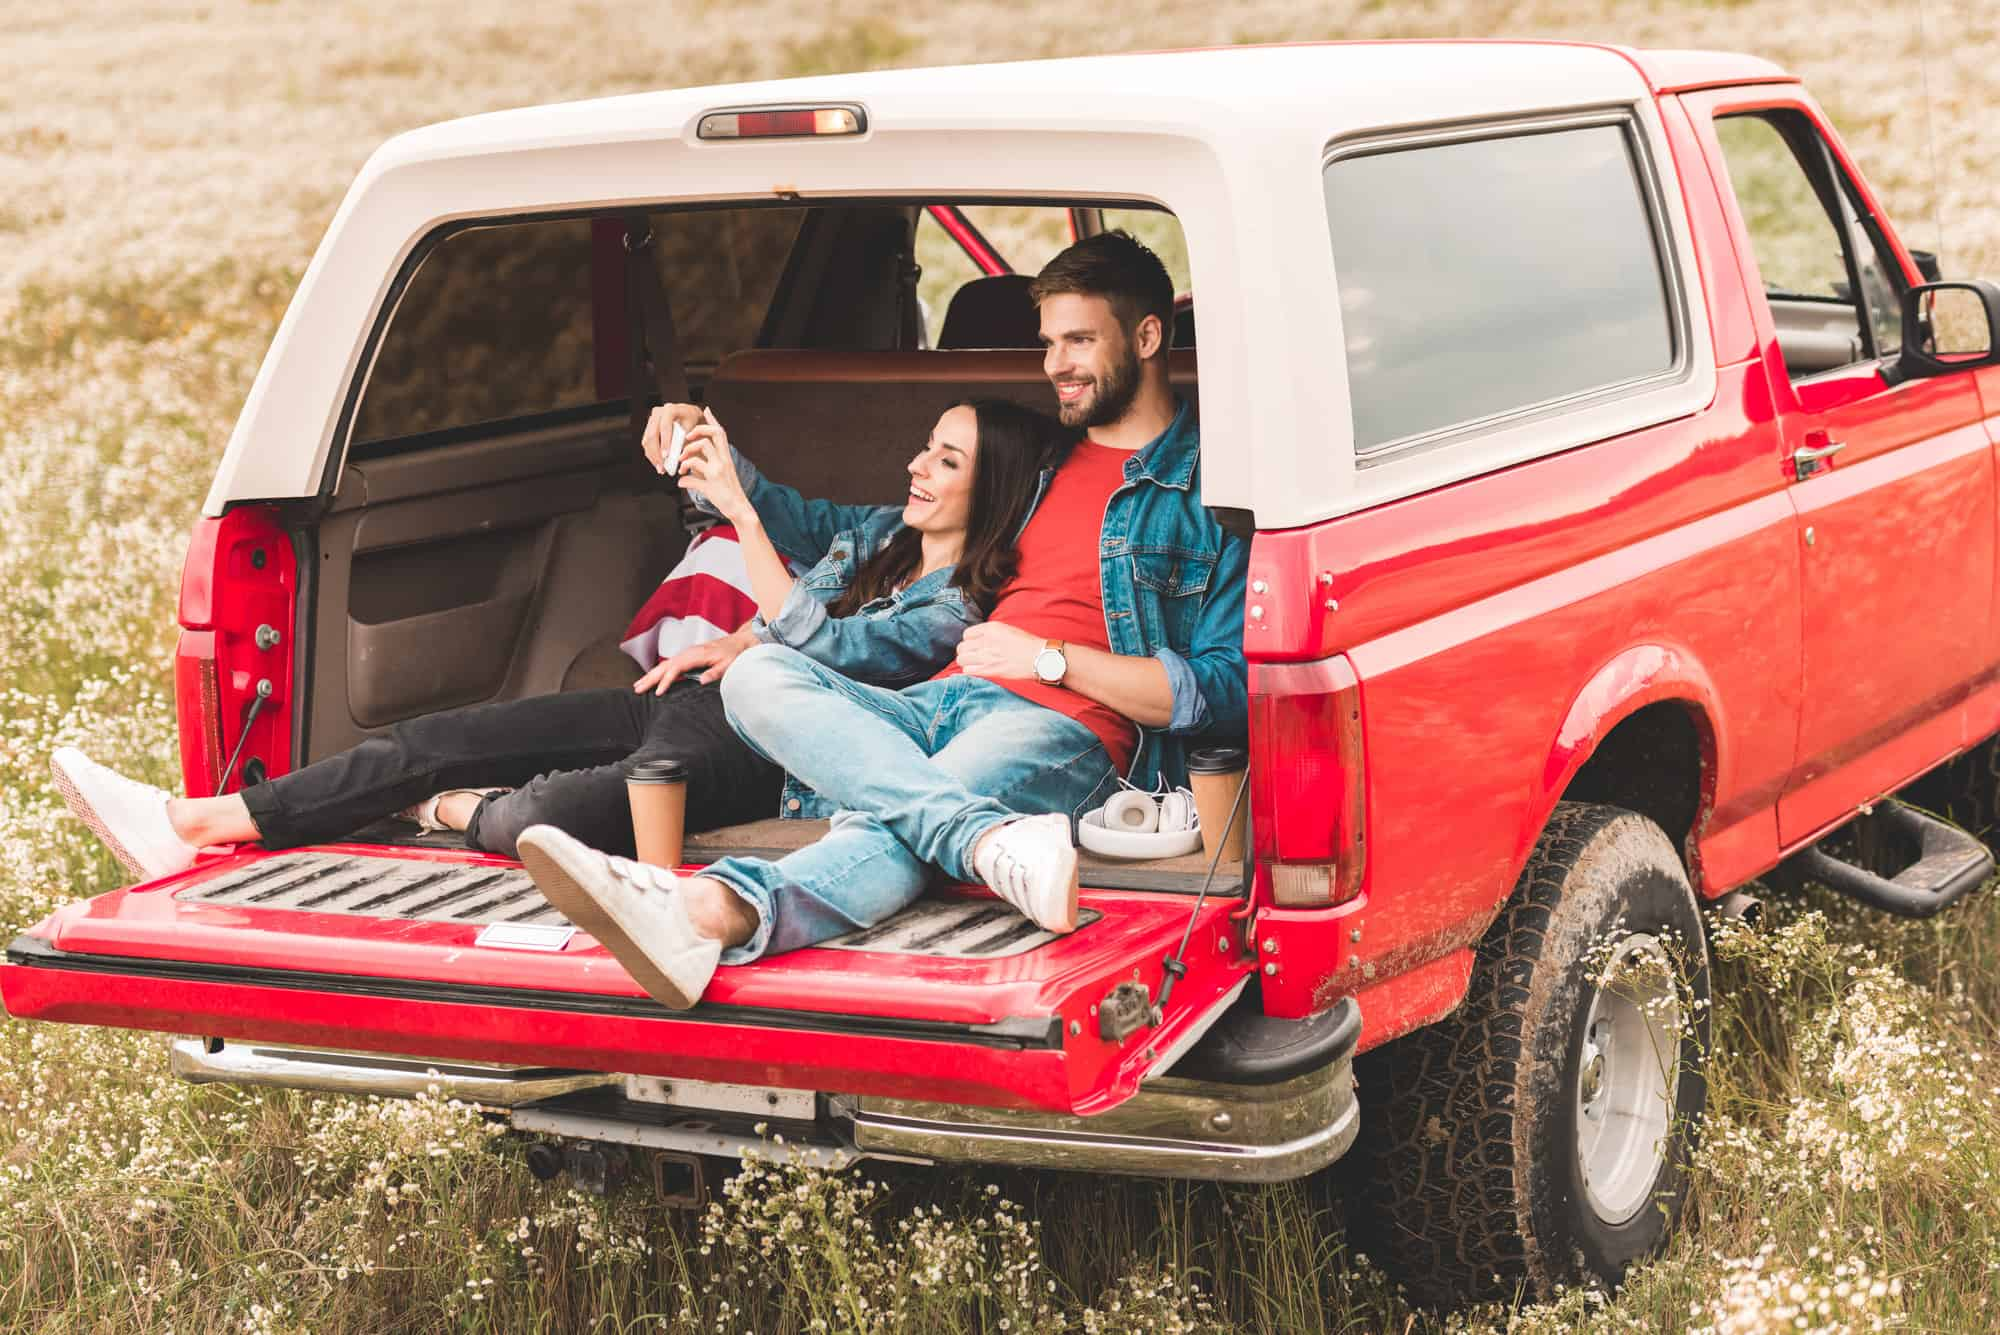 couple in back of truck for, using an outdoor date idea